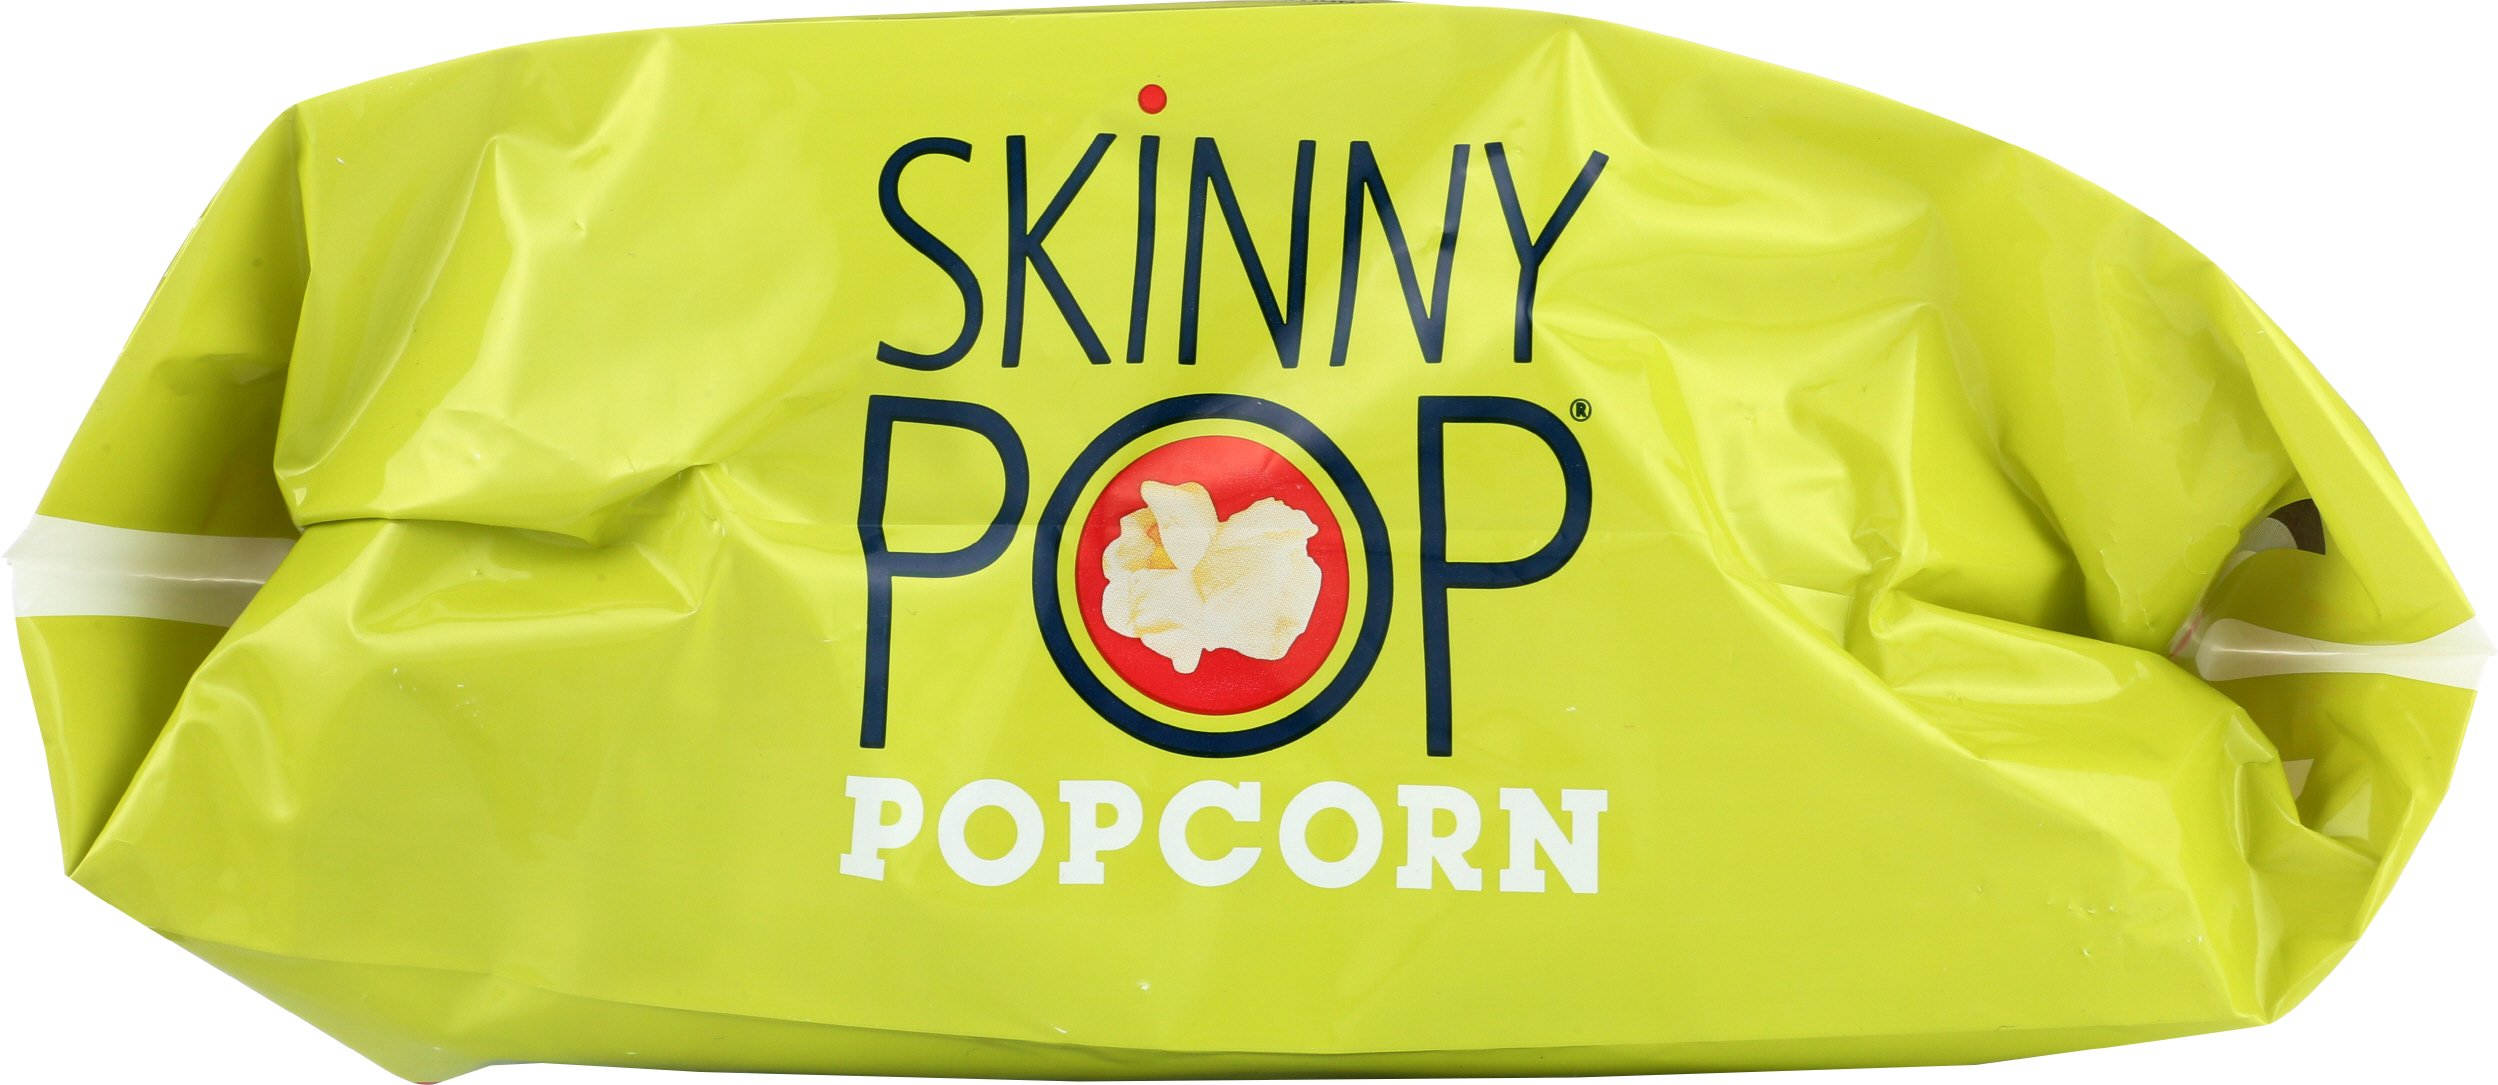 SKINNYPOP Original Popped Popcorn, Skinny Pack, Individual Bags, Gluten Free Popcorn, Non-GMO, No Artificial Ingredients, A Delicious Source of Fiber, 3.9 Ounce (Pack of 10) by SkinnyPop (Image #2)